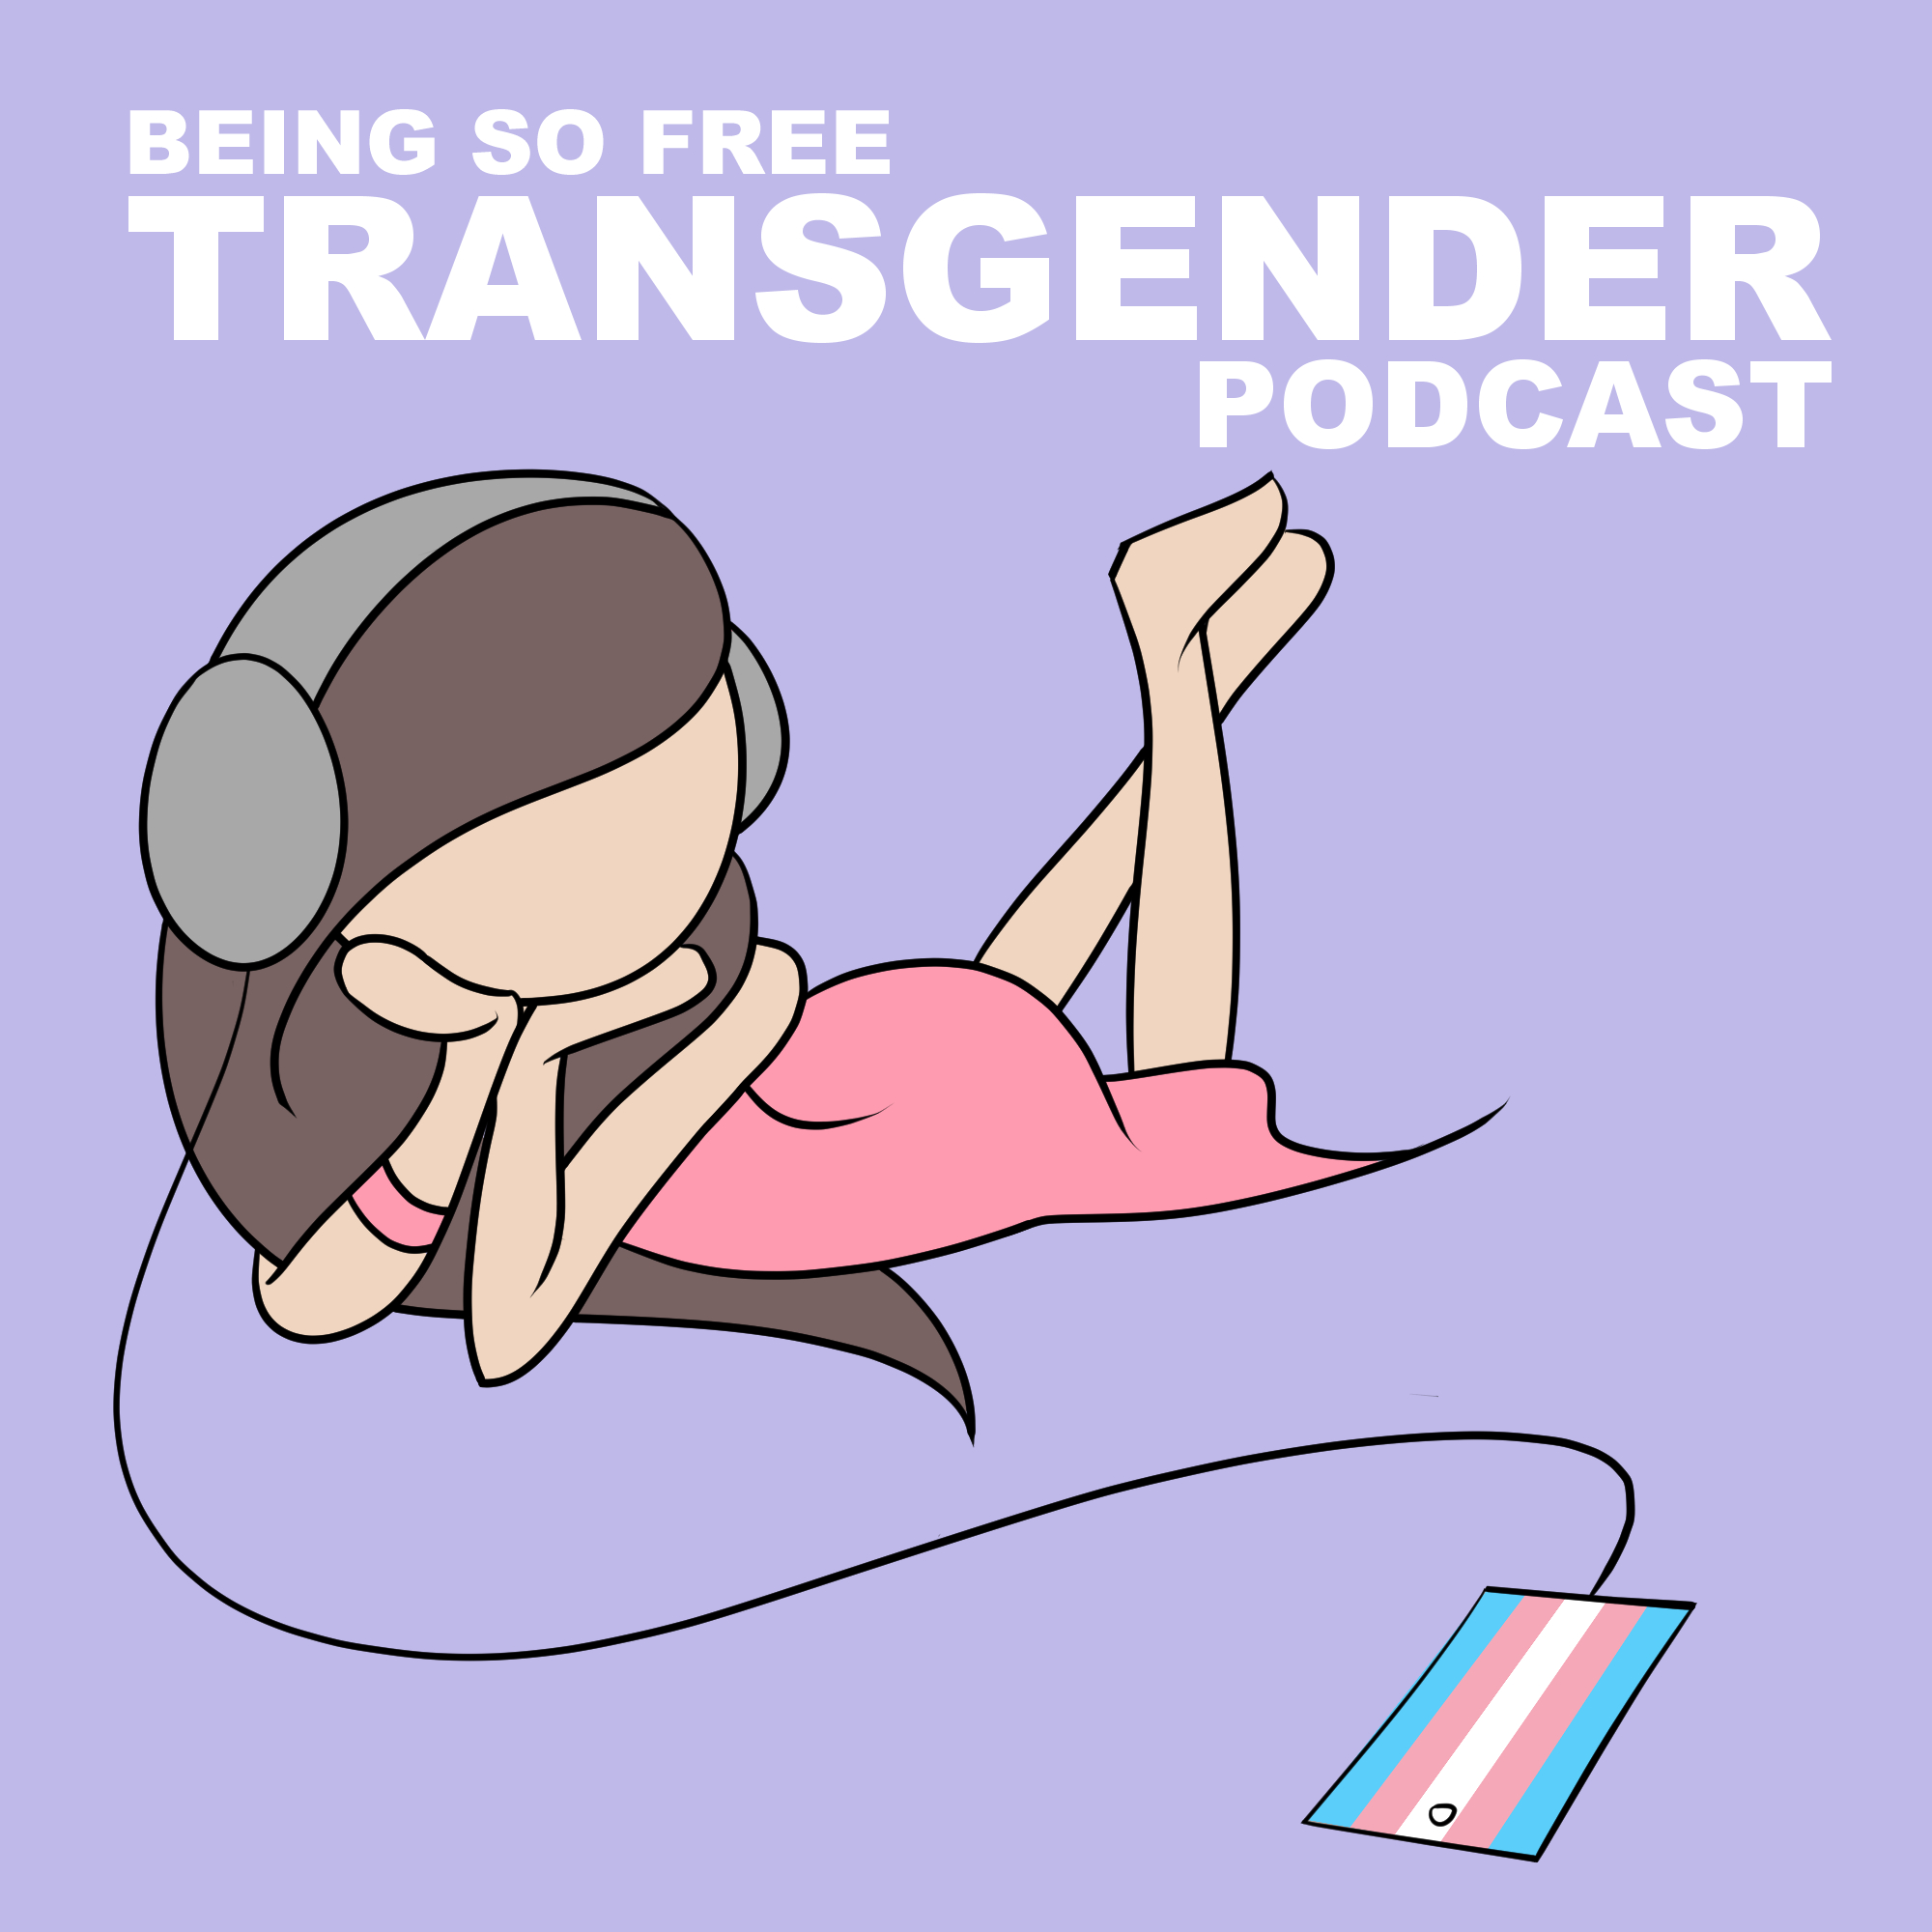 Being So Free Transgender Podcast, with Artist Sophie Lawson